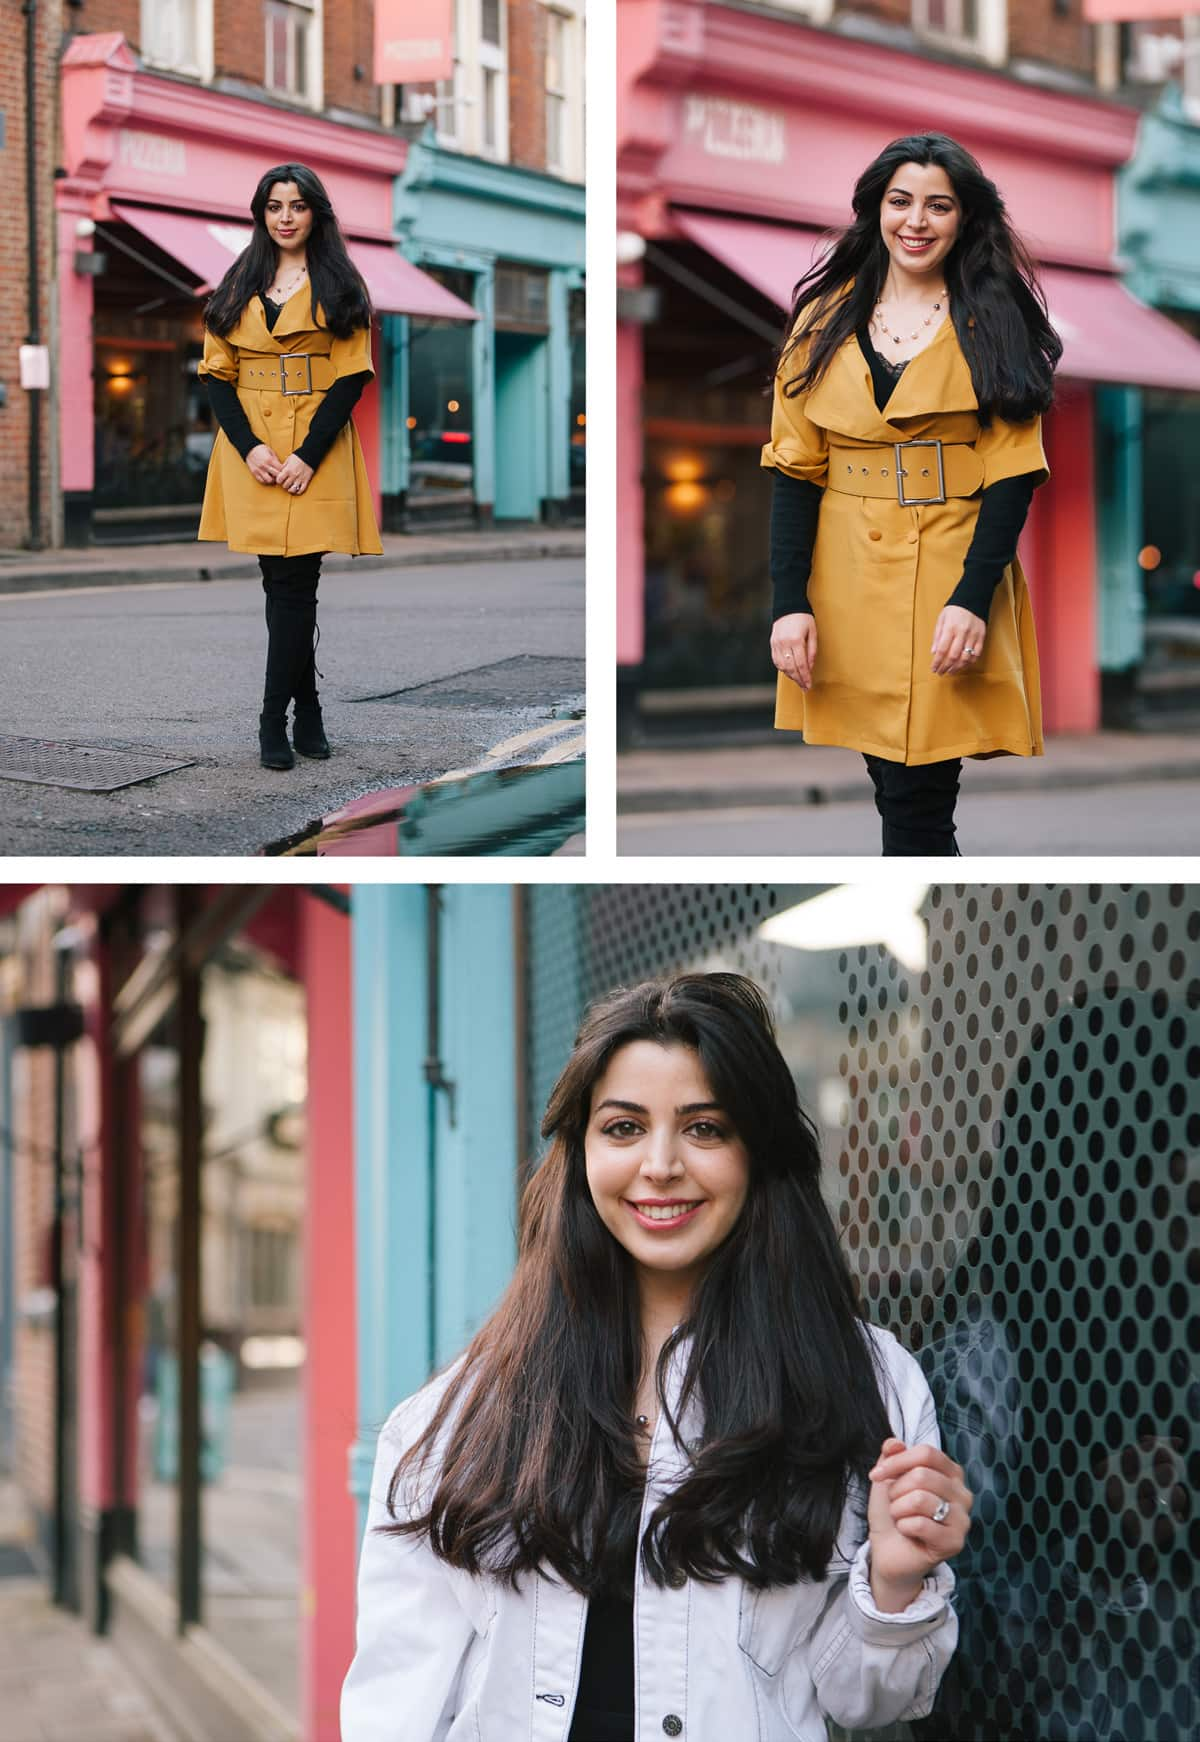 Collage of images from a portrait shoot in and around Oxford. Woman wears black dress with yellow belted jacket and white denim jacket.